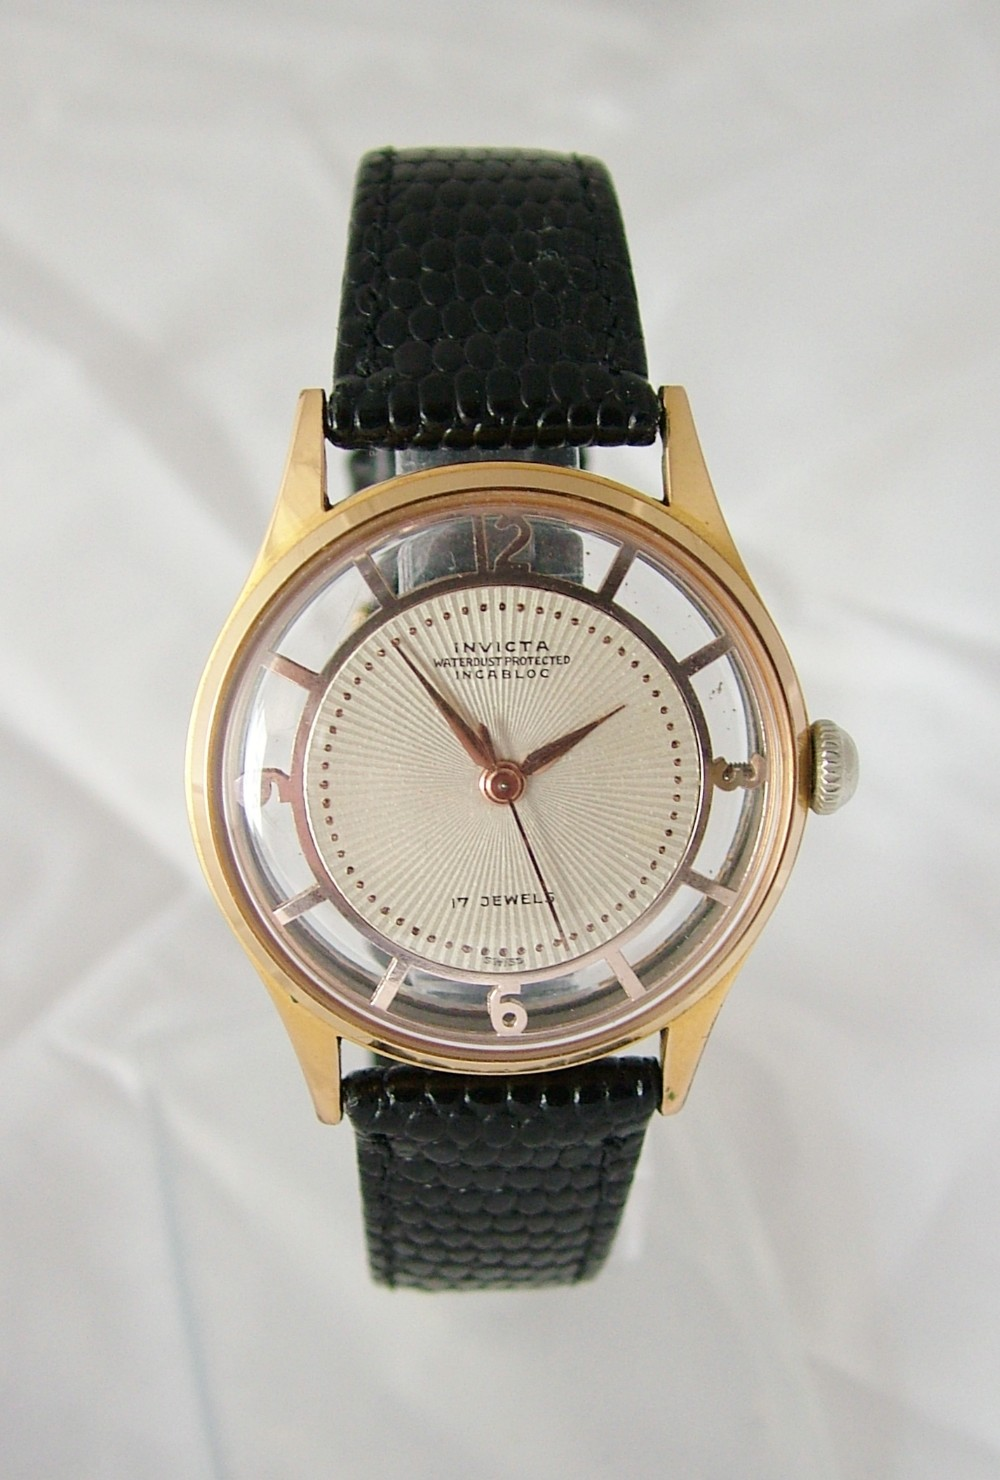 Gents Vintage 1950s Invicta Wrist Watch